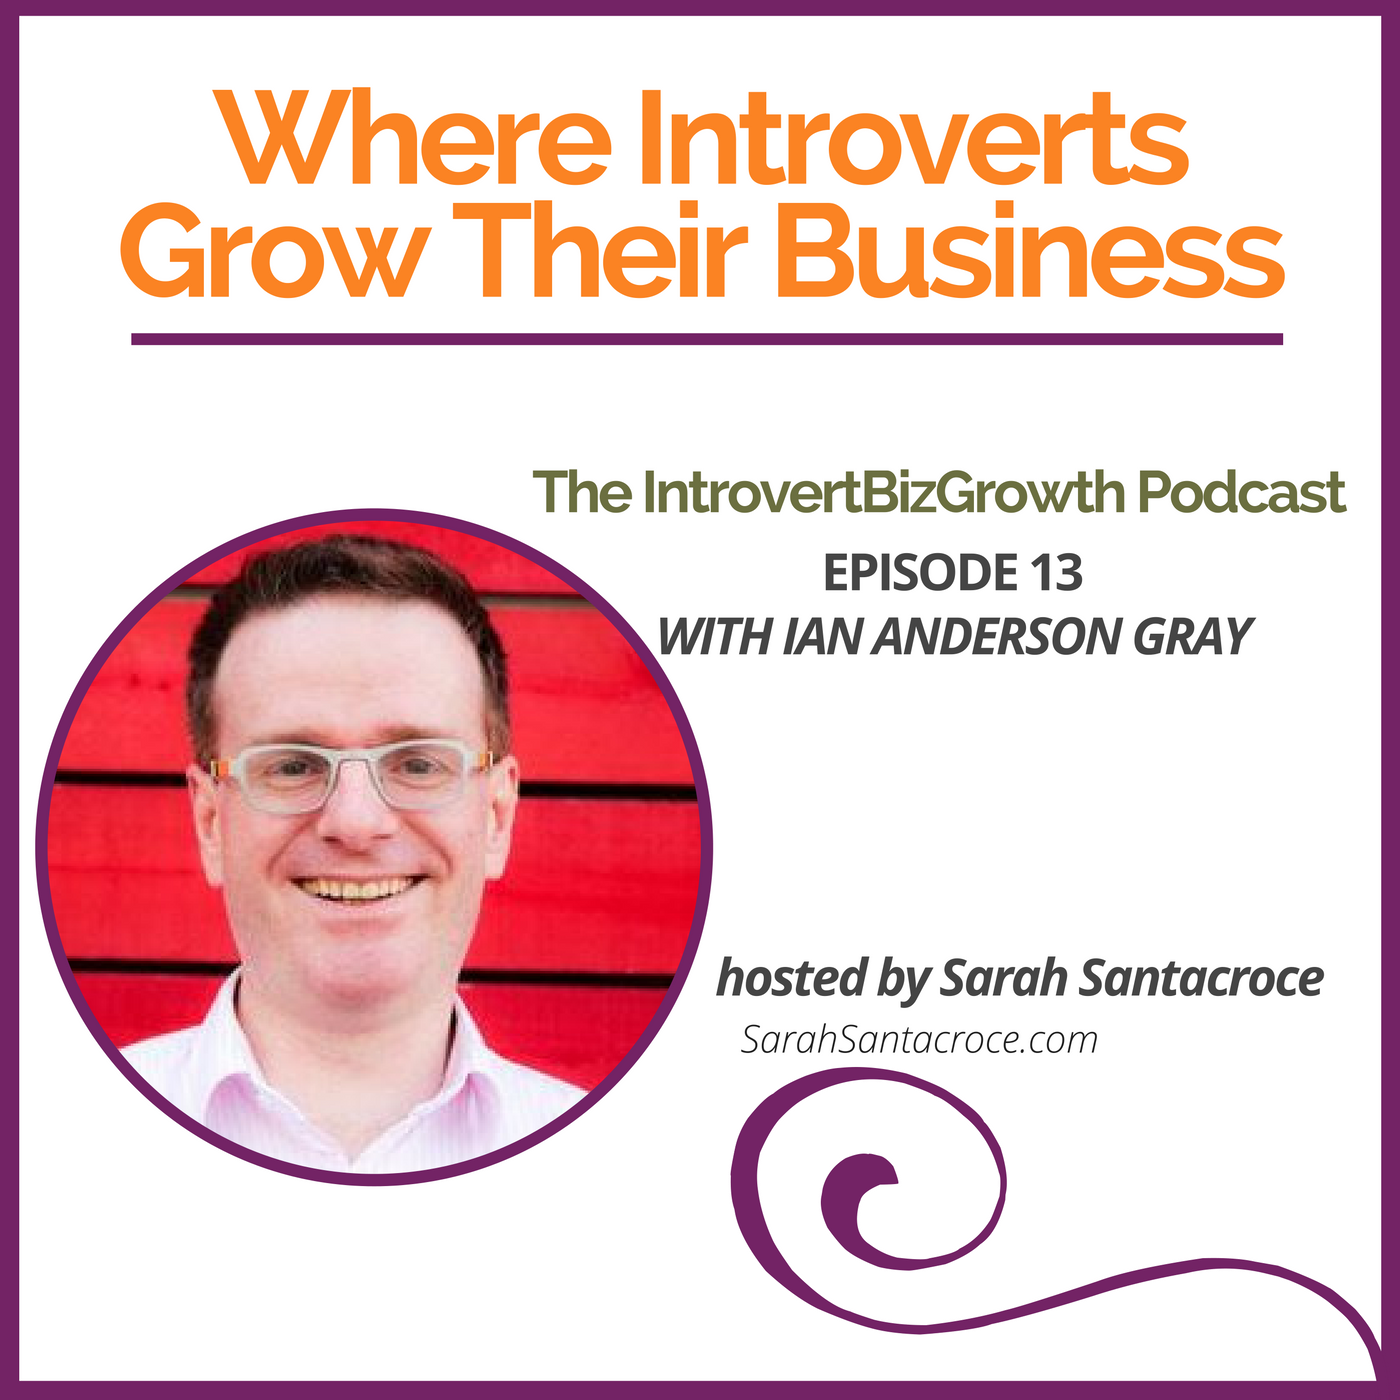 The IntrovertBizGrowth Podcast with Ian Anderson Gray